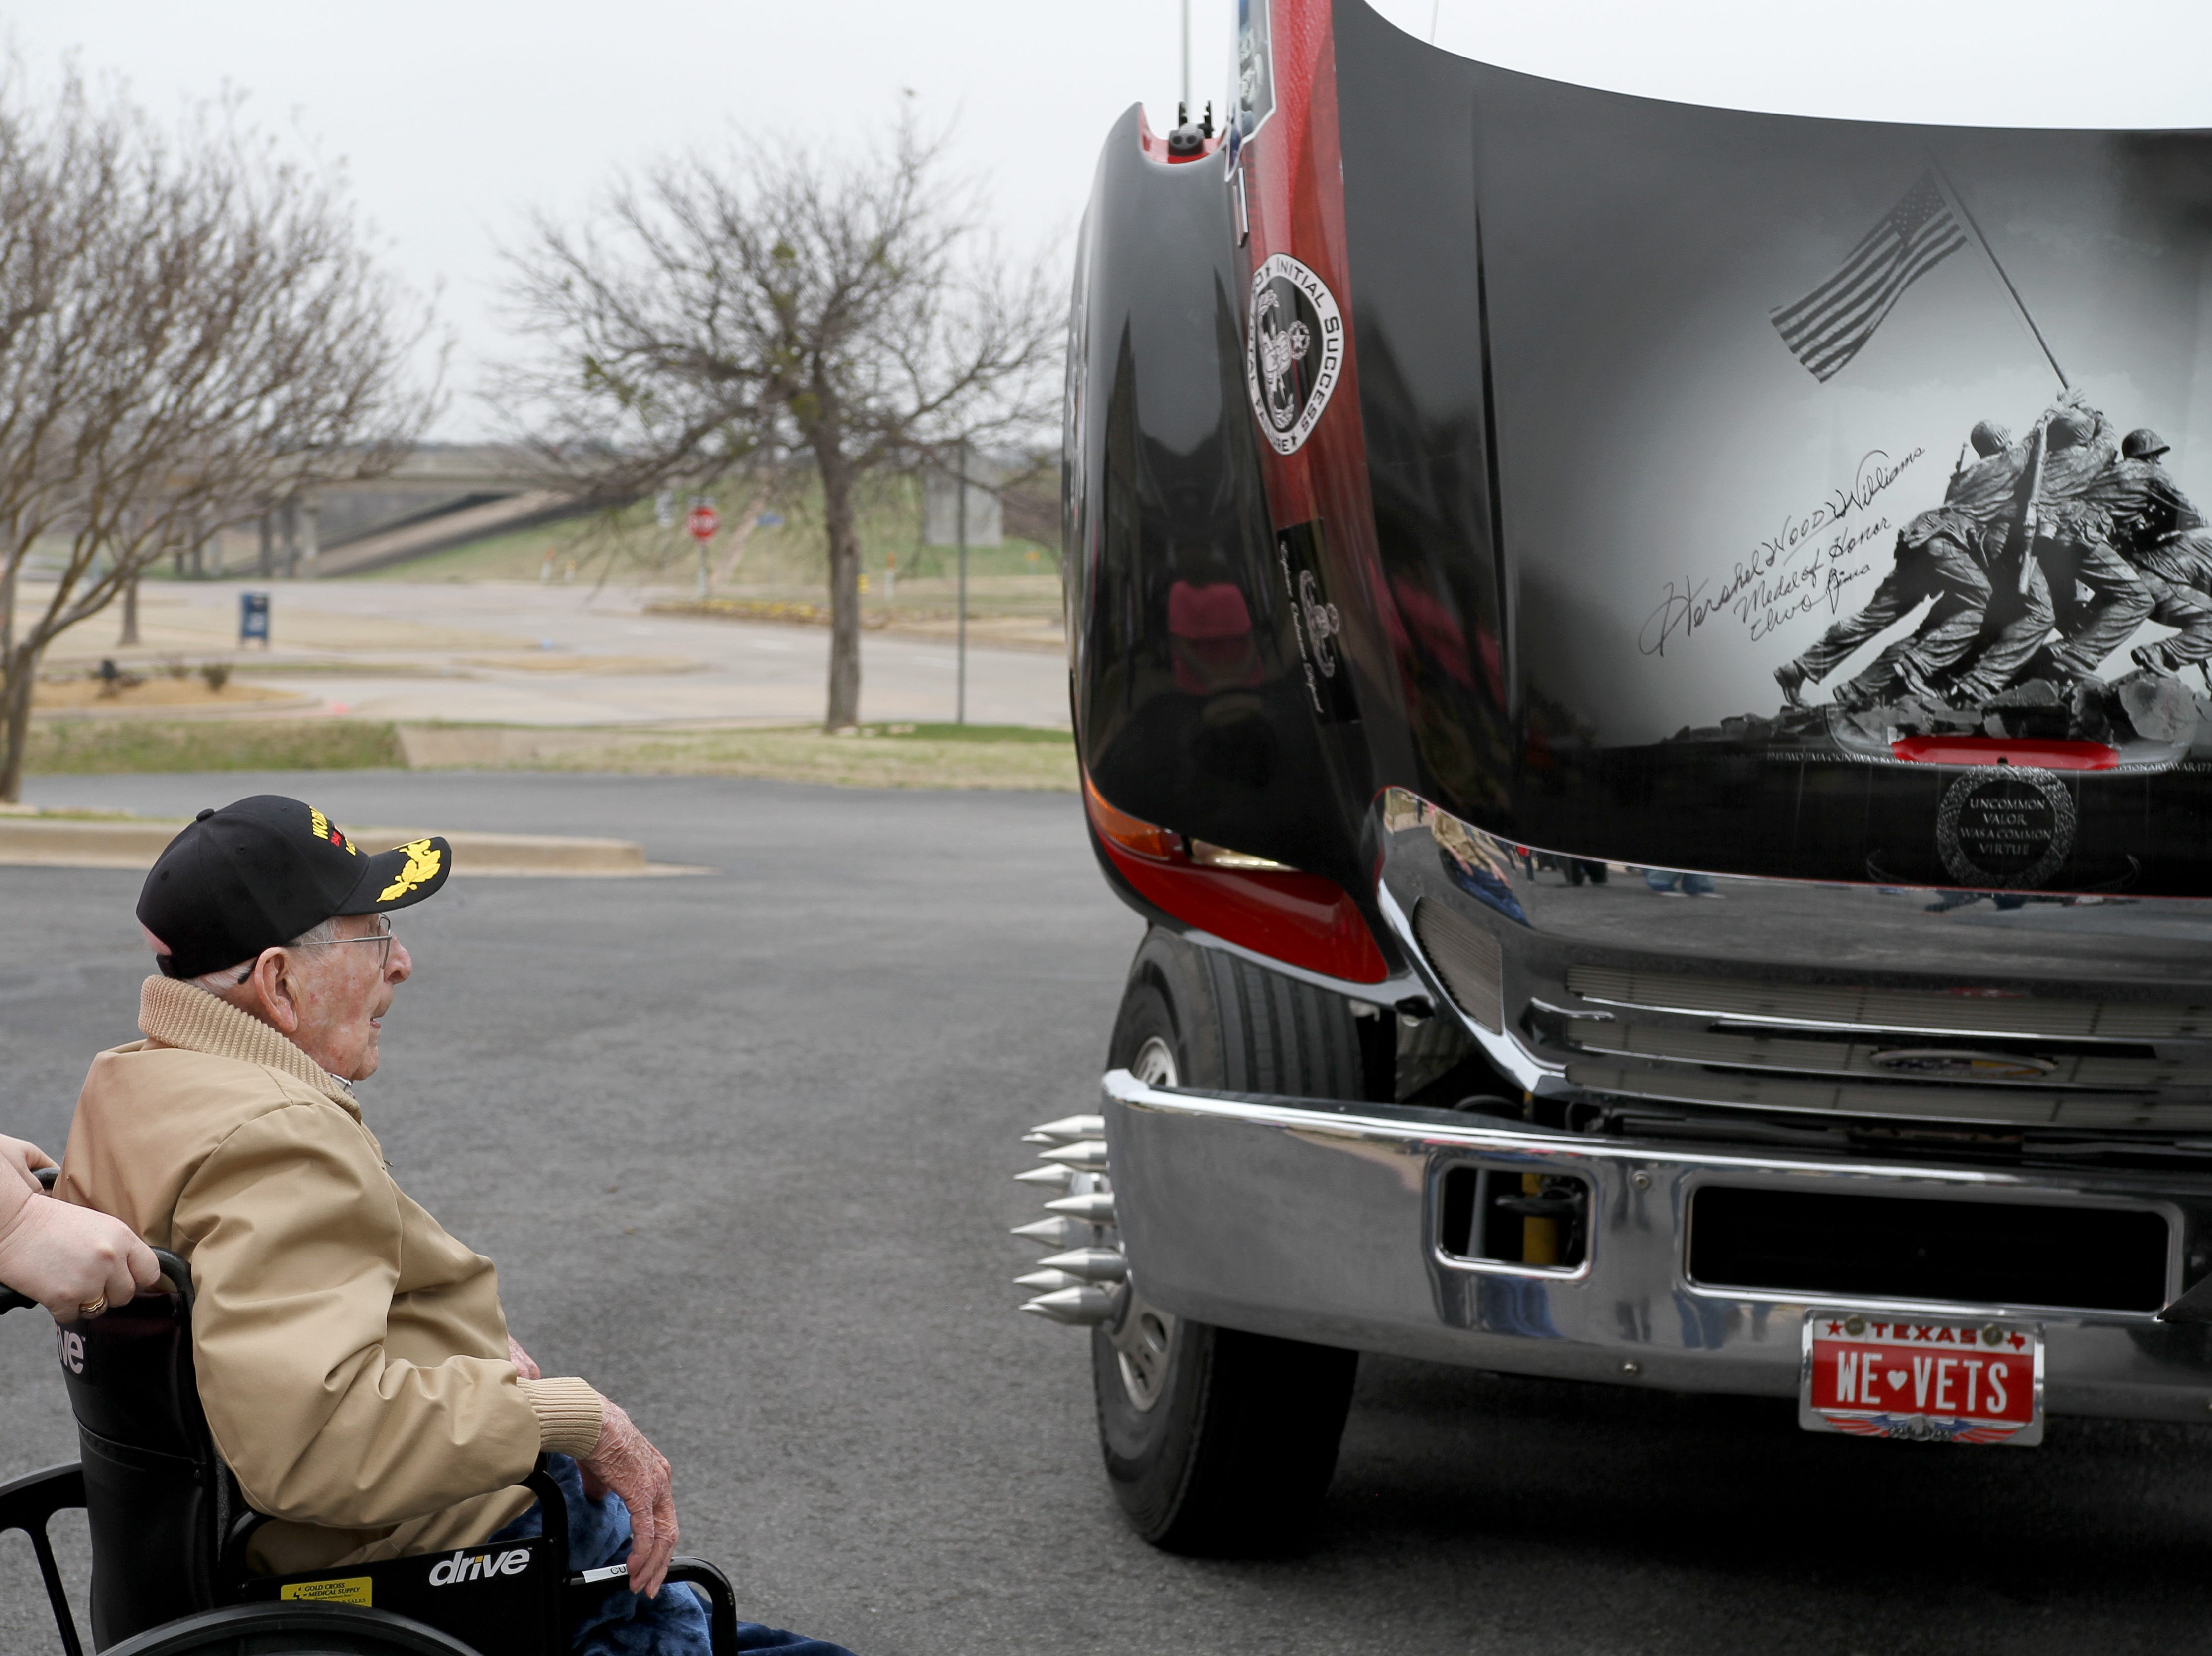 WWII veteran Joe Cuba signs the hood of a truck at his 100th birthday party Saturday, March 2, 2019, at Brookdale Midwestern.